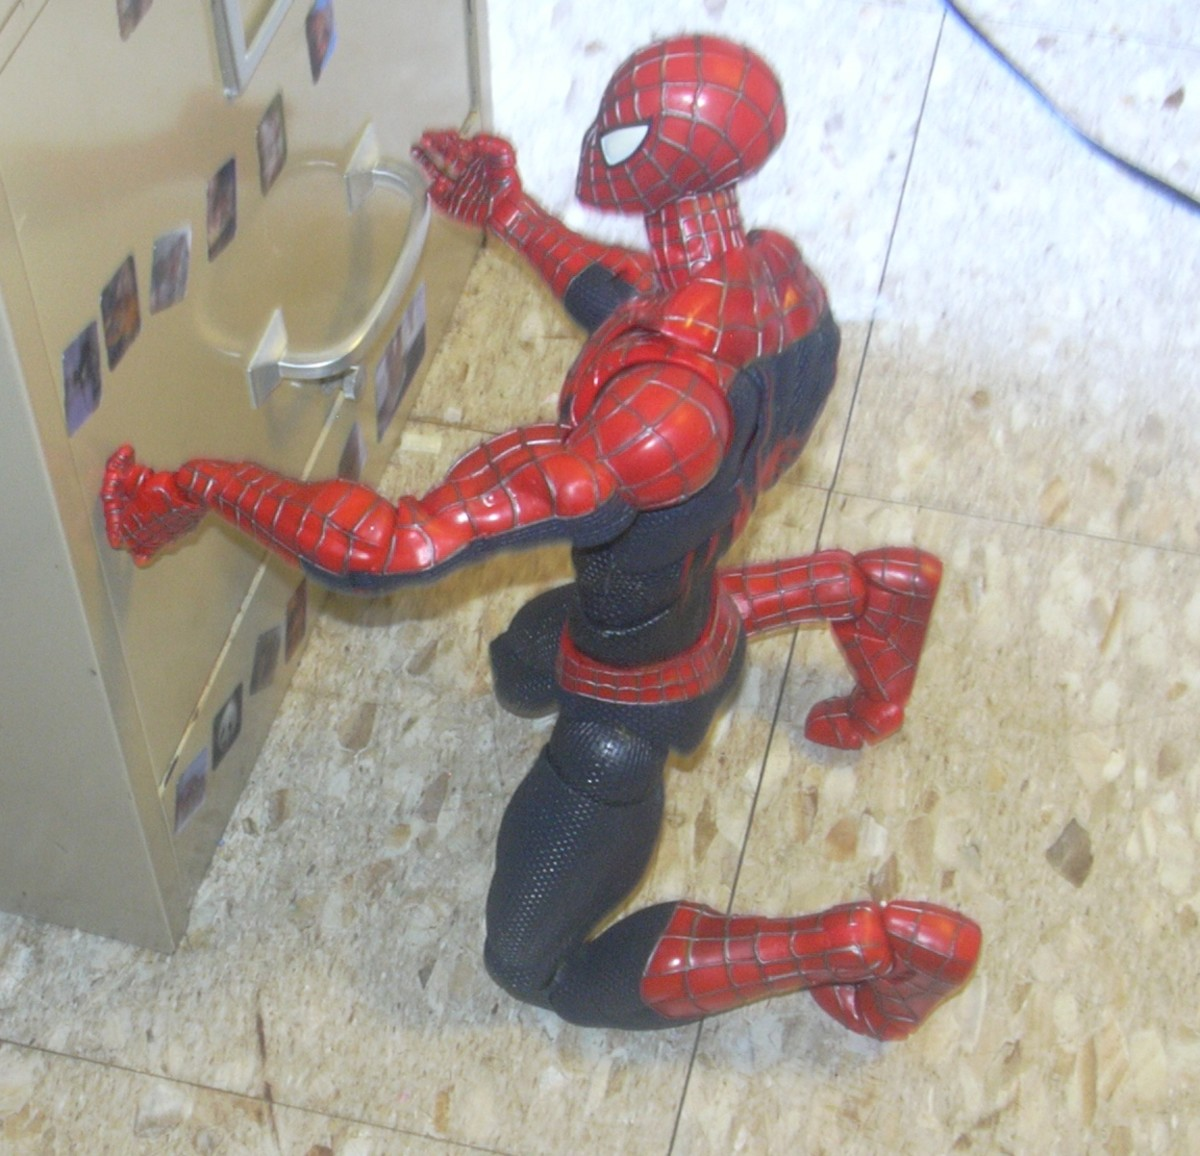 The super poseable Spider Man action figure is kneeling here.  Look at the toes...they bend.